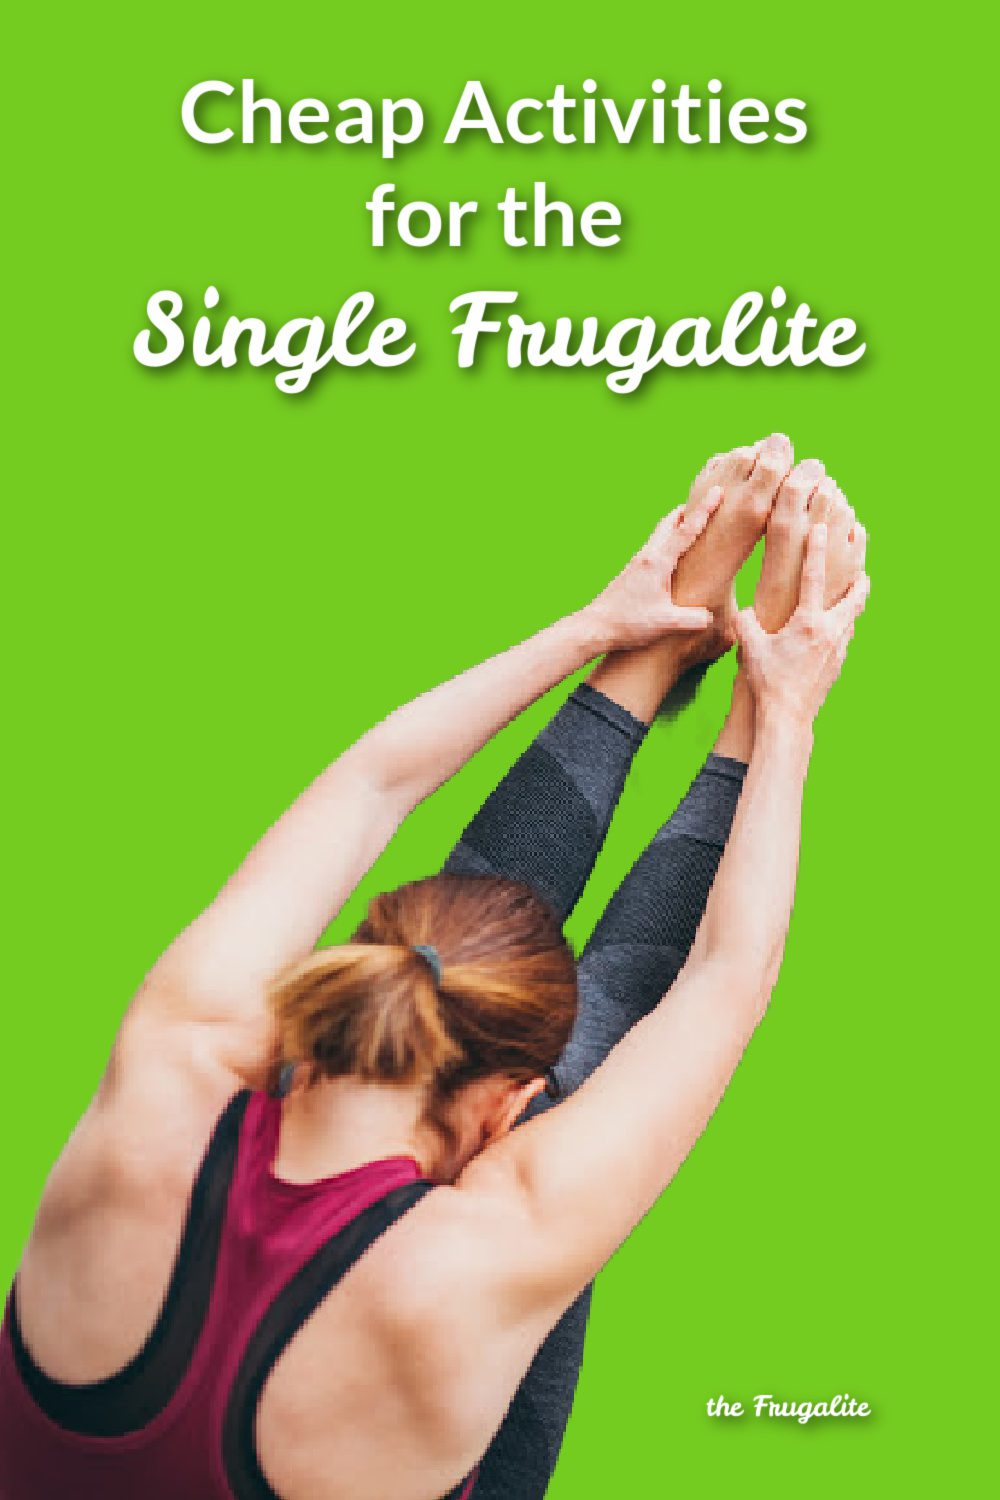 Cheap Activities for the Single Frugalite